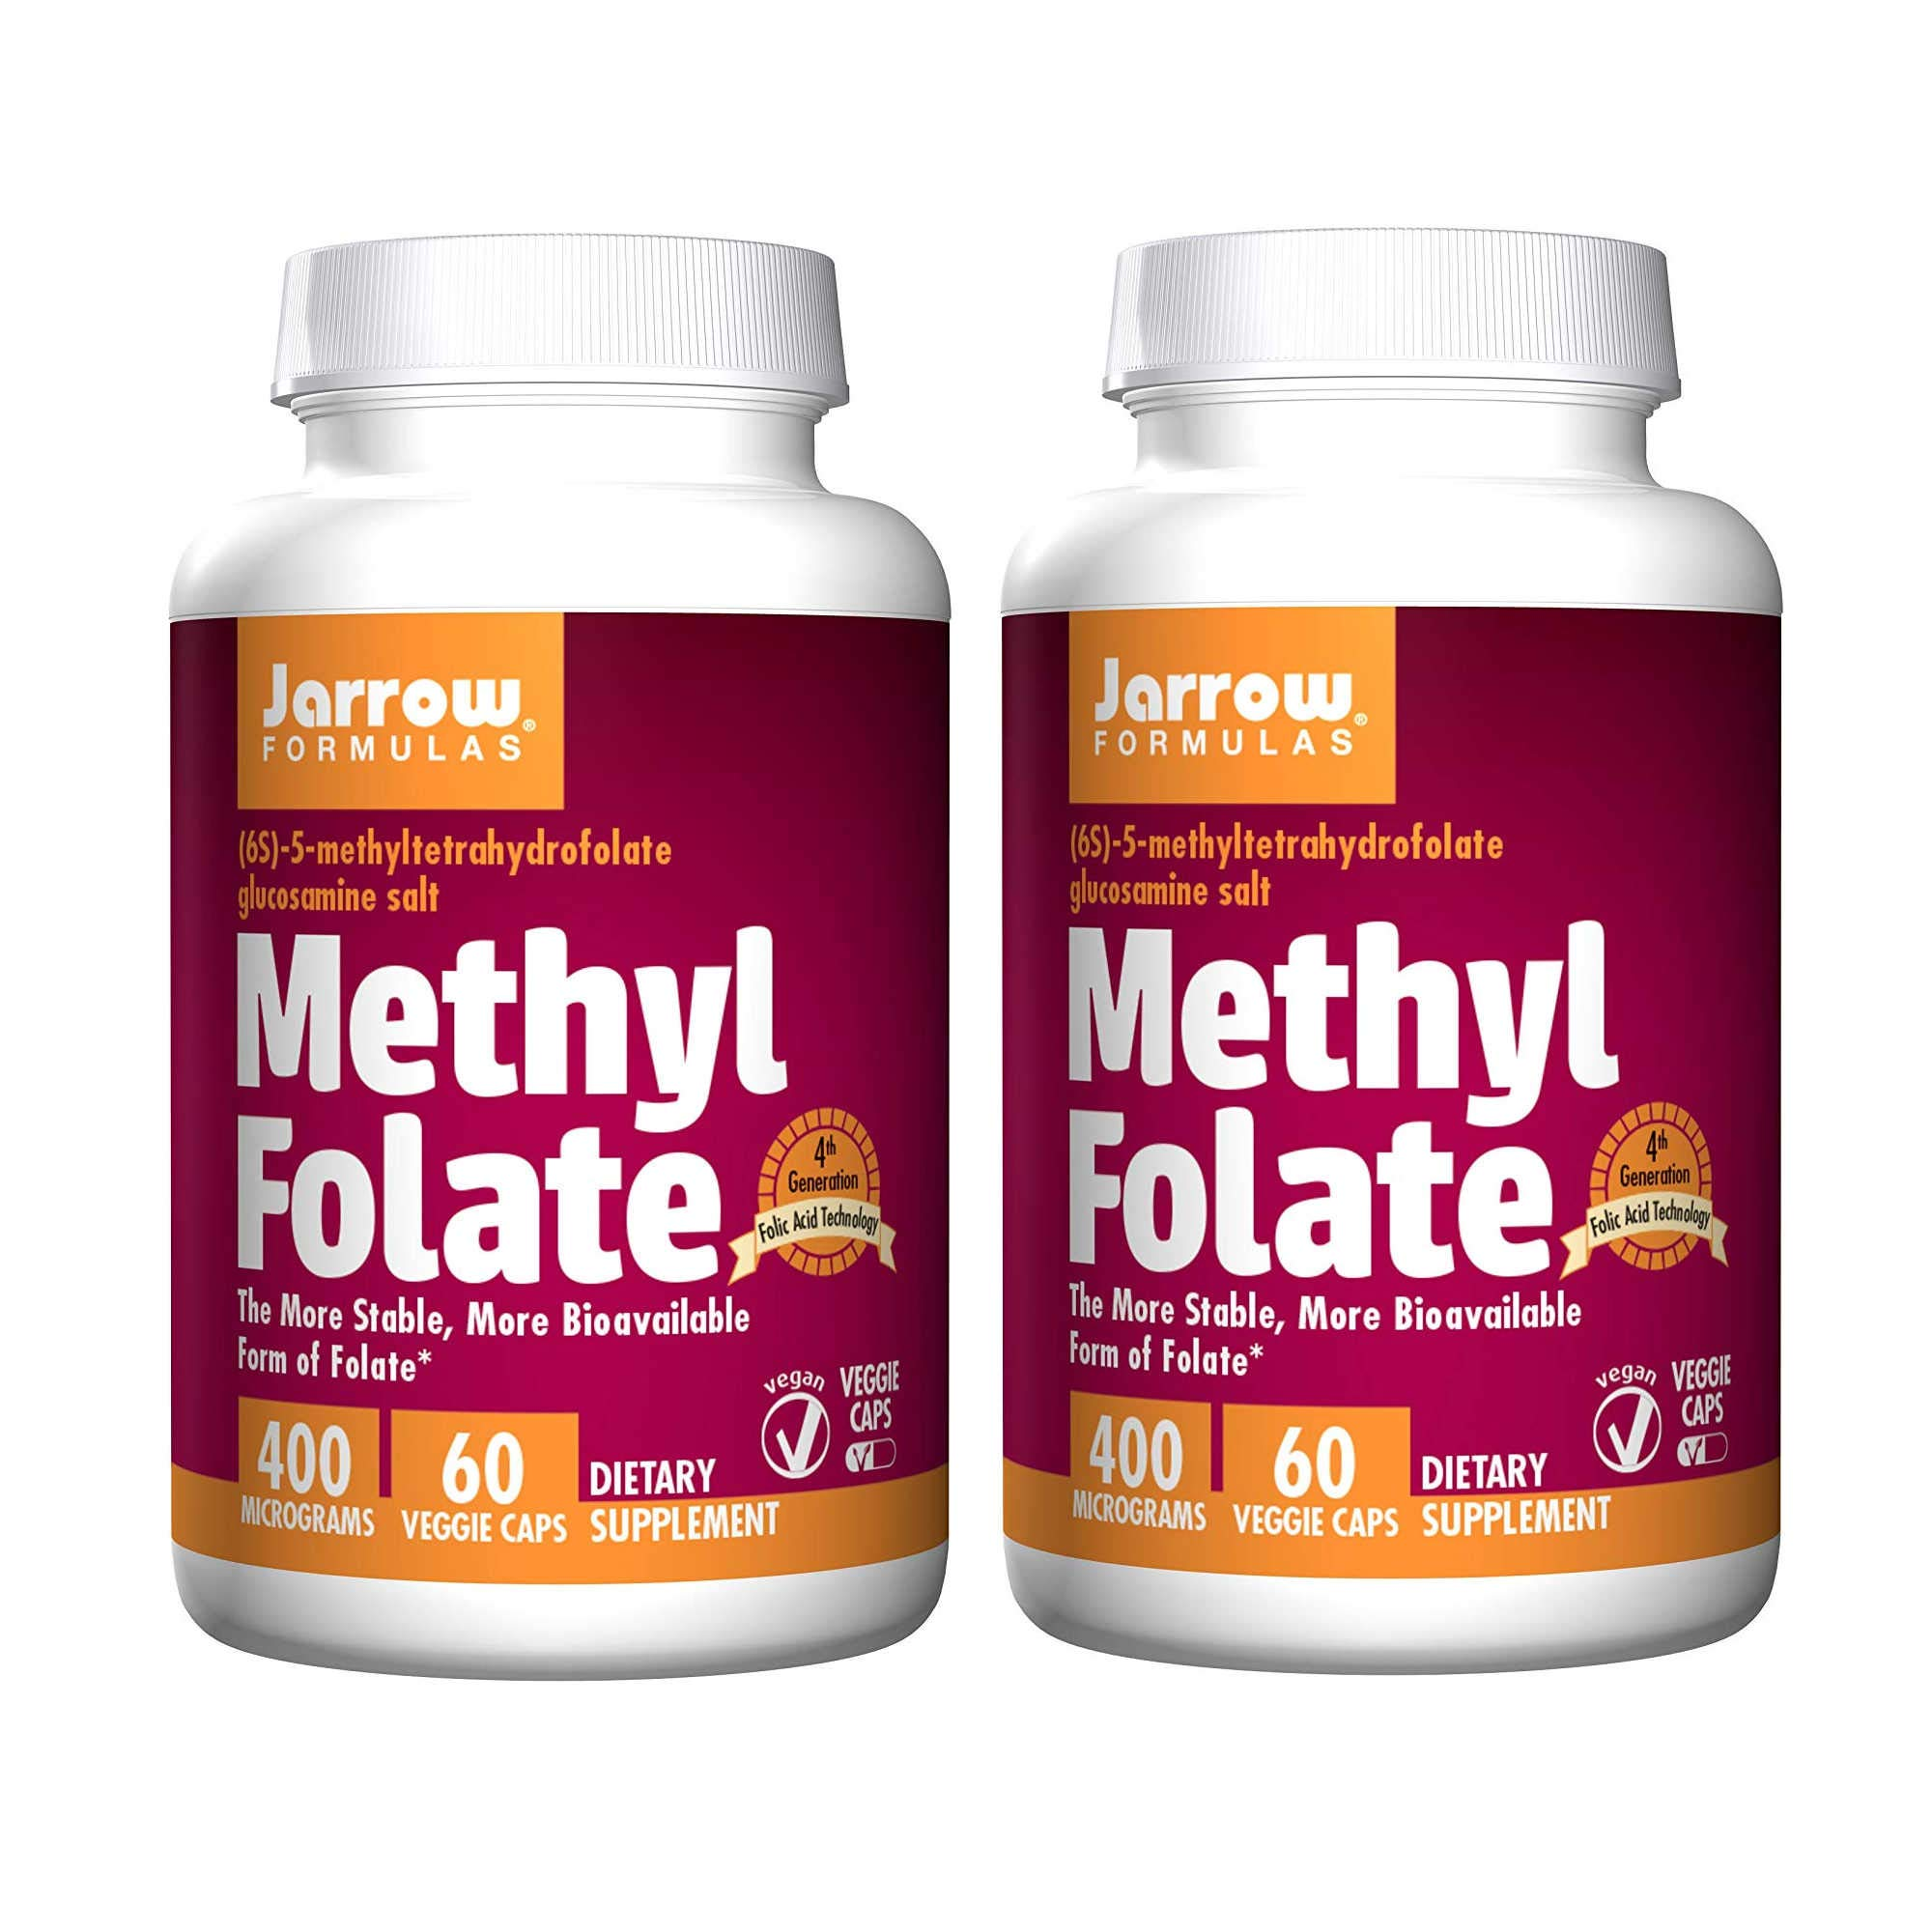 Jarrow Formulas Methyl Folate The Most Biologically Active Form of Folate 400 Micrograms - 100 Capsules (Pack of 2) by JARR0W